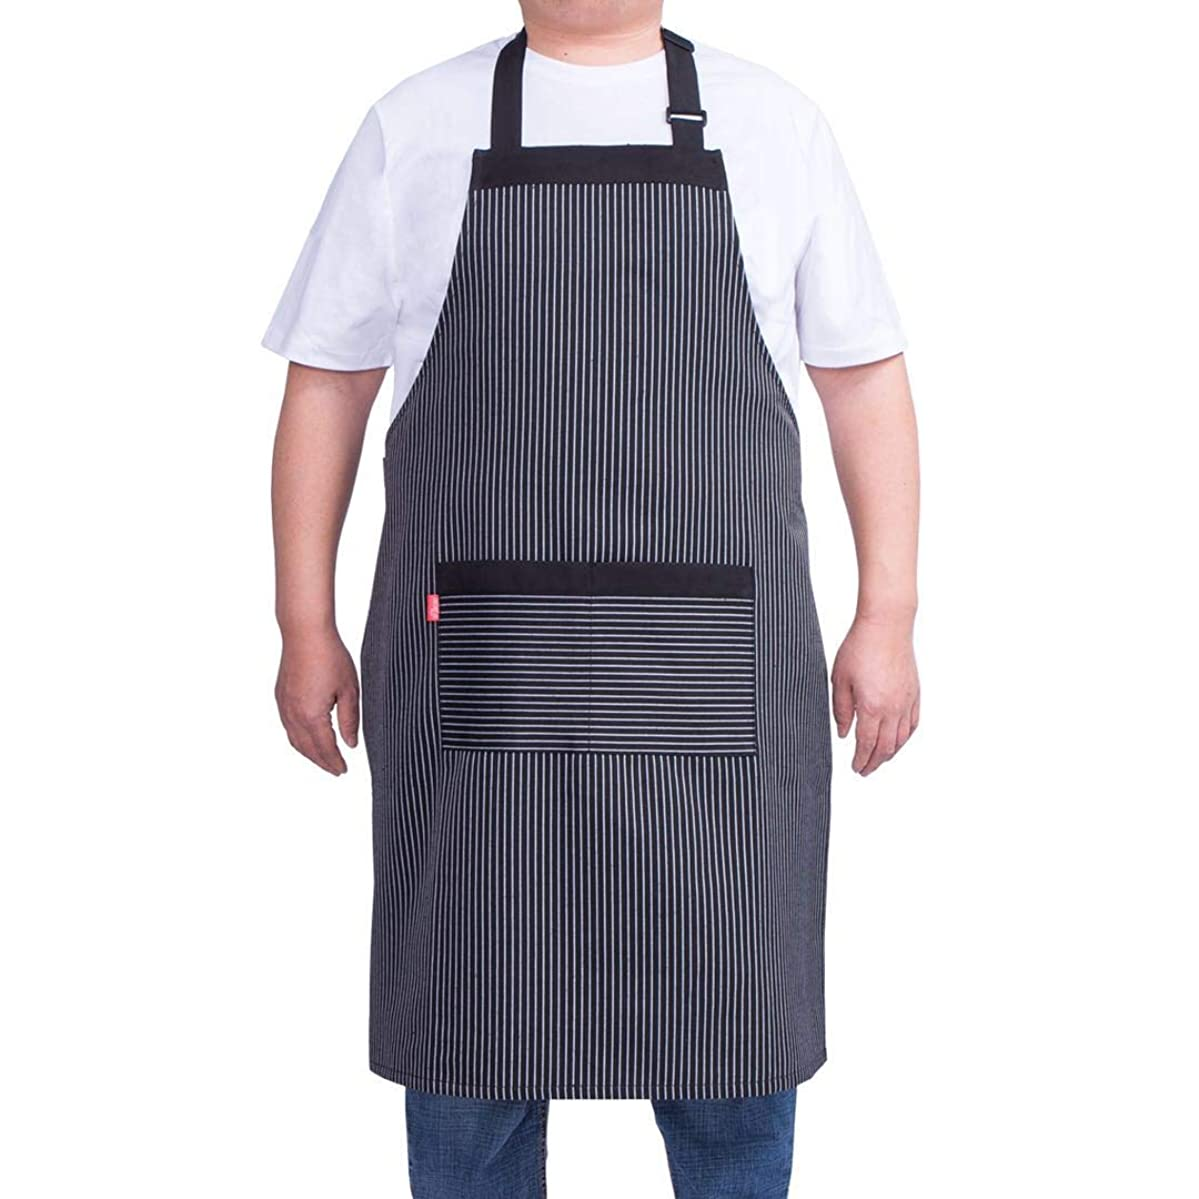 ALIPOBO Aprons for Women and Men, Kitchen Chef Apron with 2 Pockets and 40